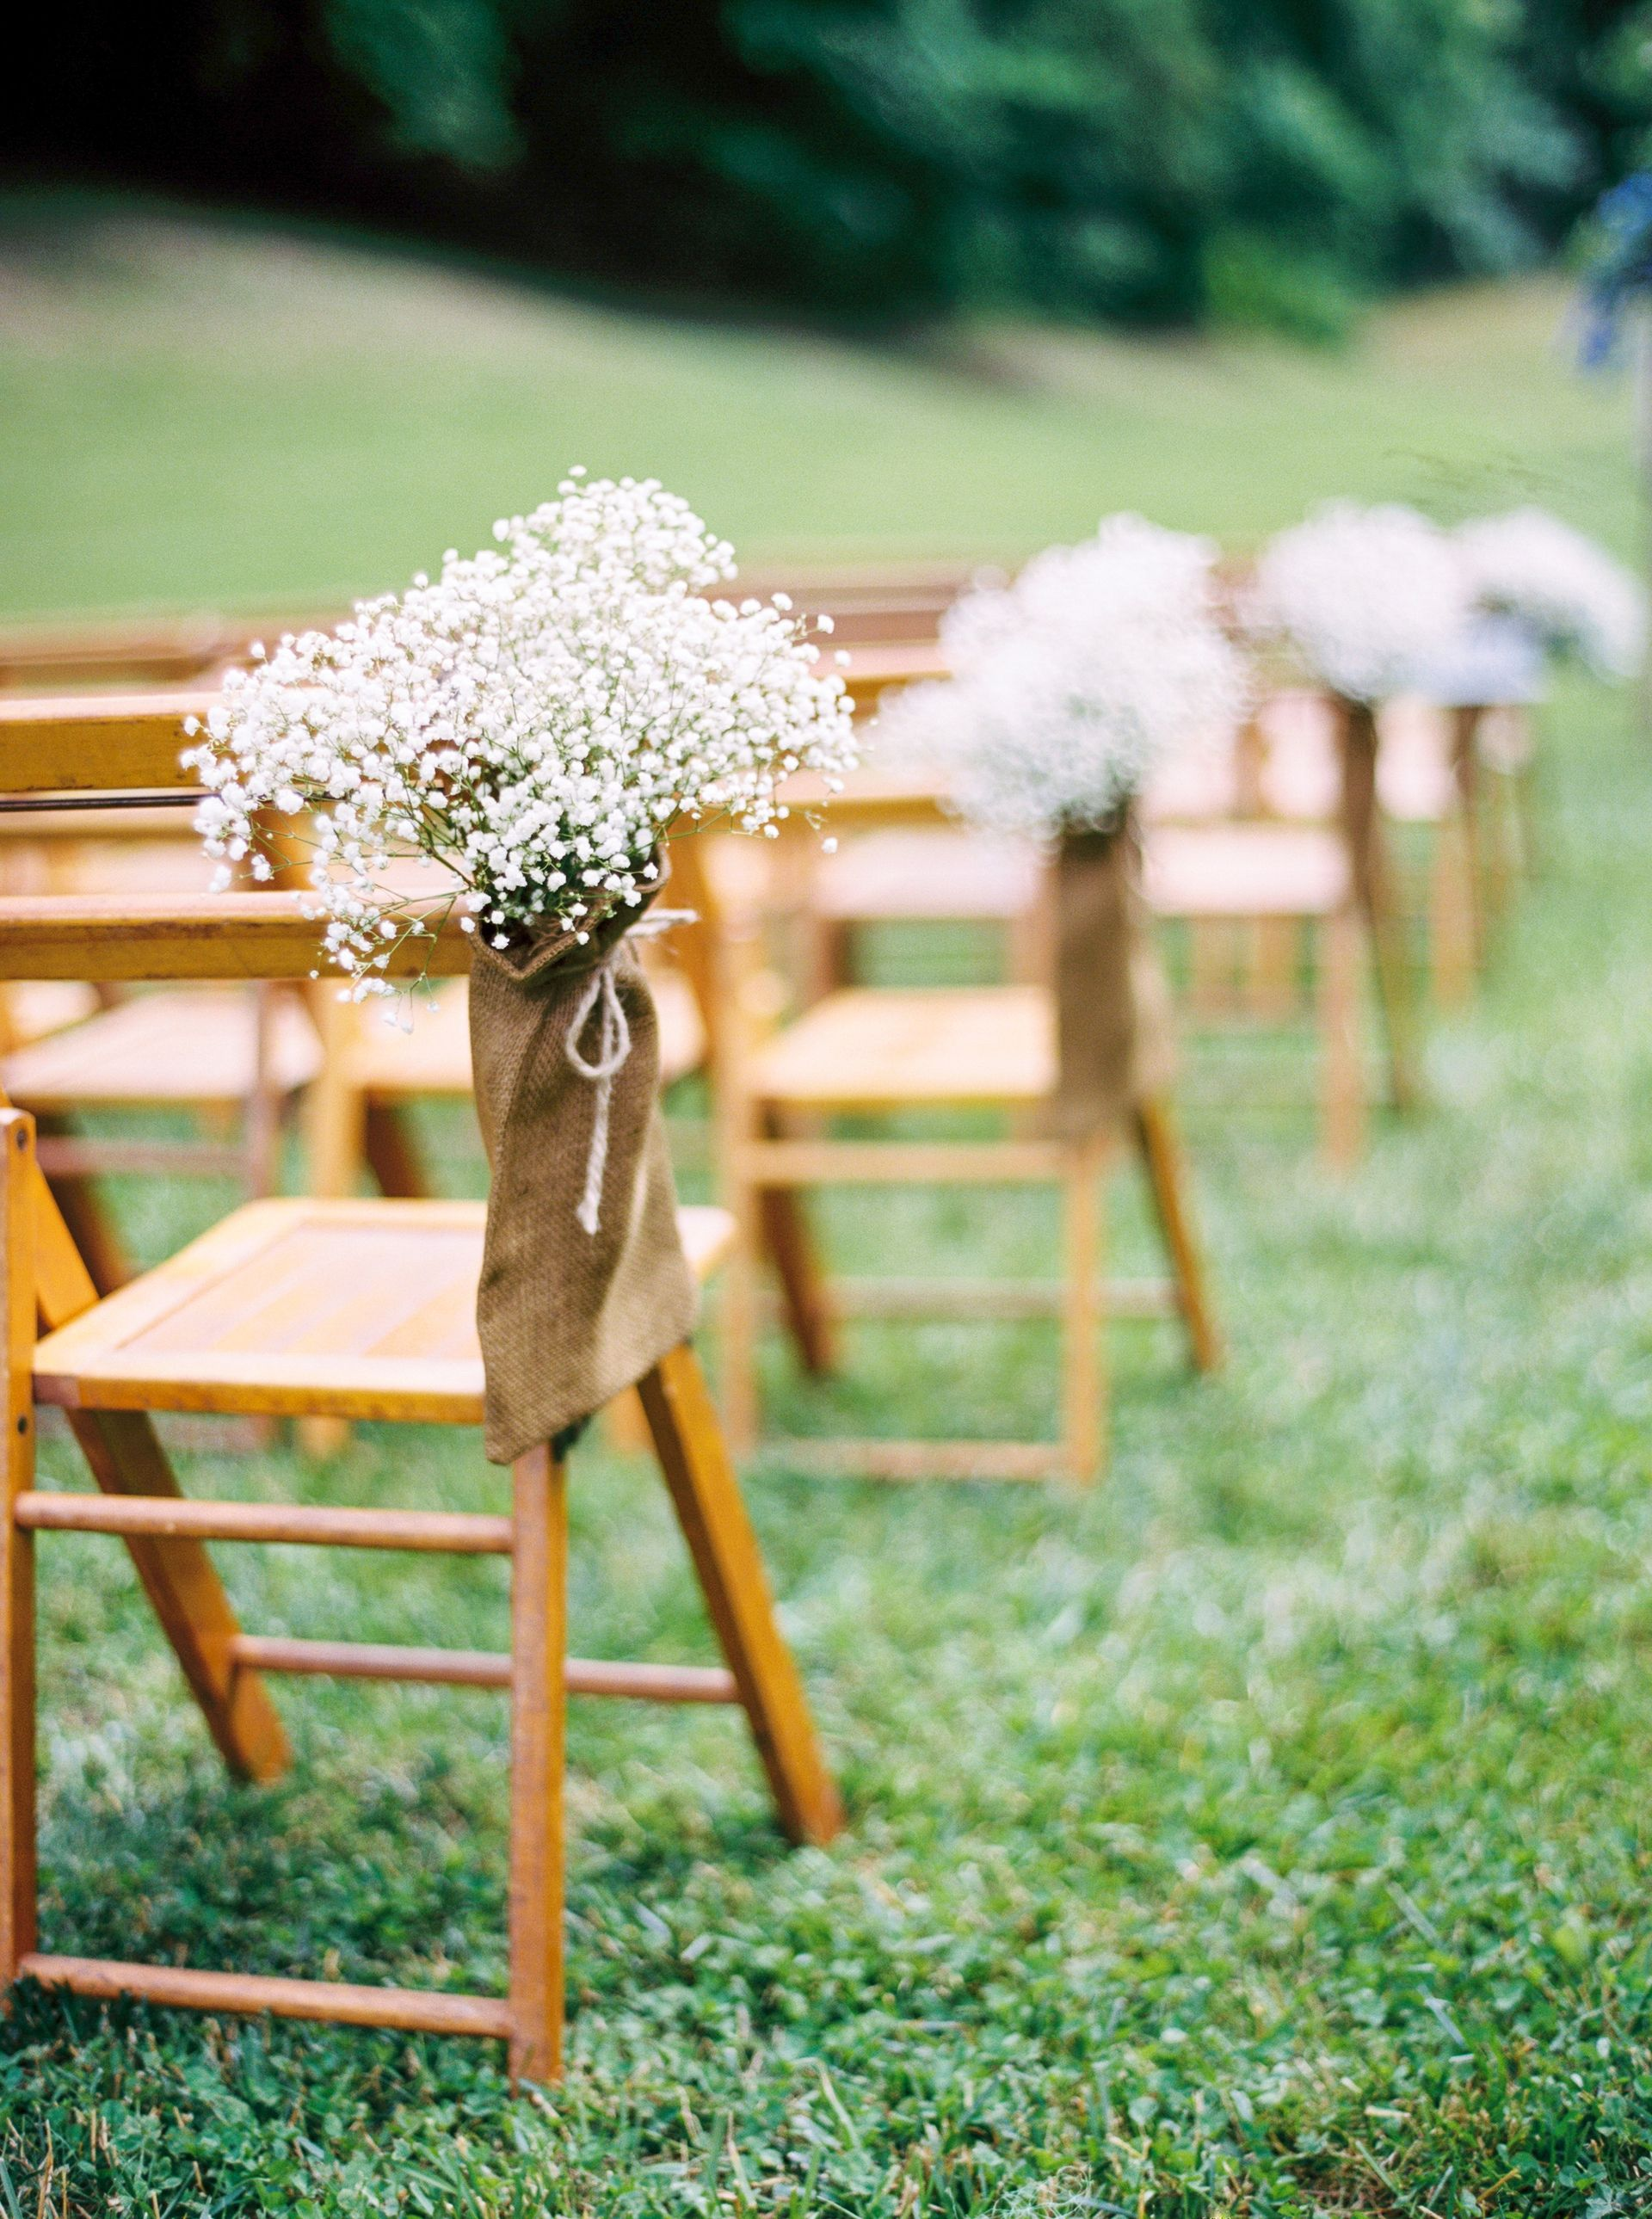 Outdoor Wedding Ceremony Chair Decor Baby S Breath Burlap Bags Rustic Outdoor Wedding Chair Decorations Wedding Ceremony Chairs Outdoor Wedding Decorations